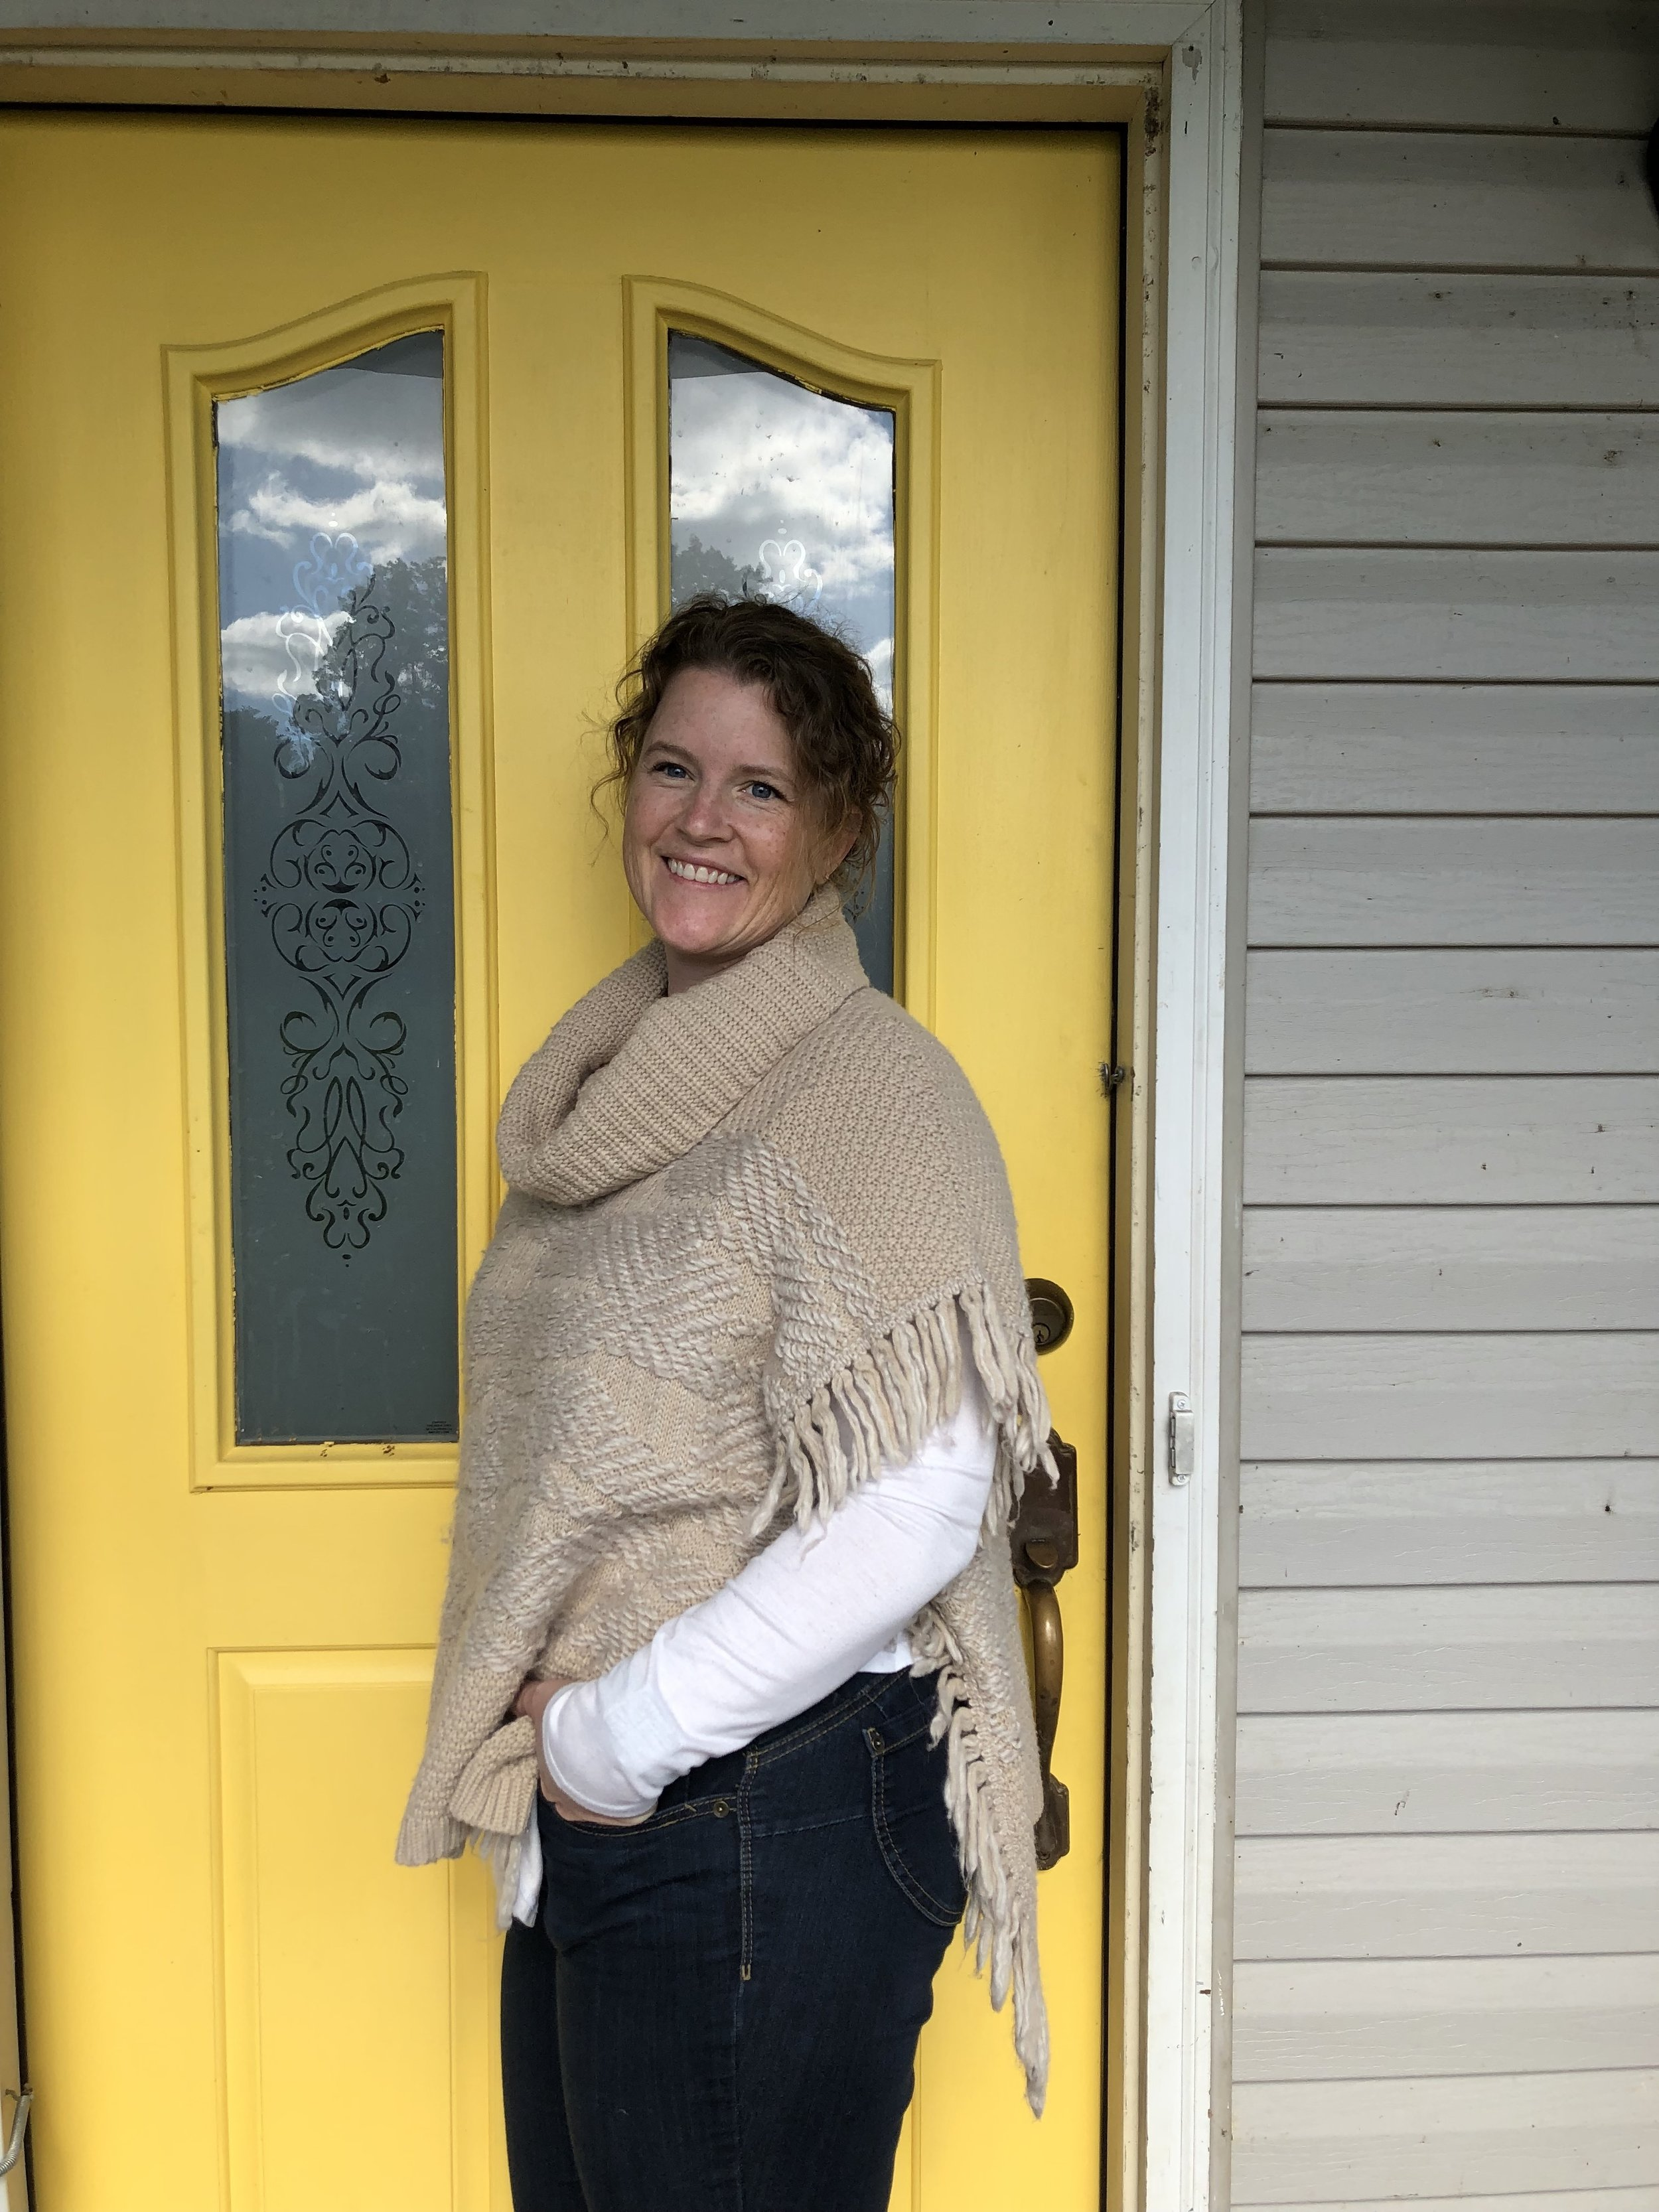 Heather Spiegel Miller - Owner + Creative Director  An avid dreamer, I love to get on my bike, go to crossfit, curl up with a good book on a warm sunny porch and am really hoping that this is the year I actually get my beehives going.